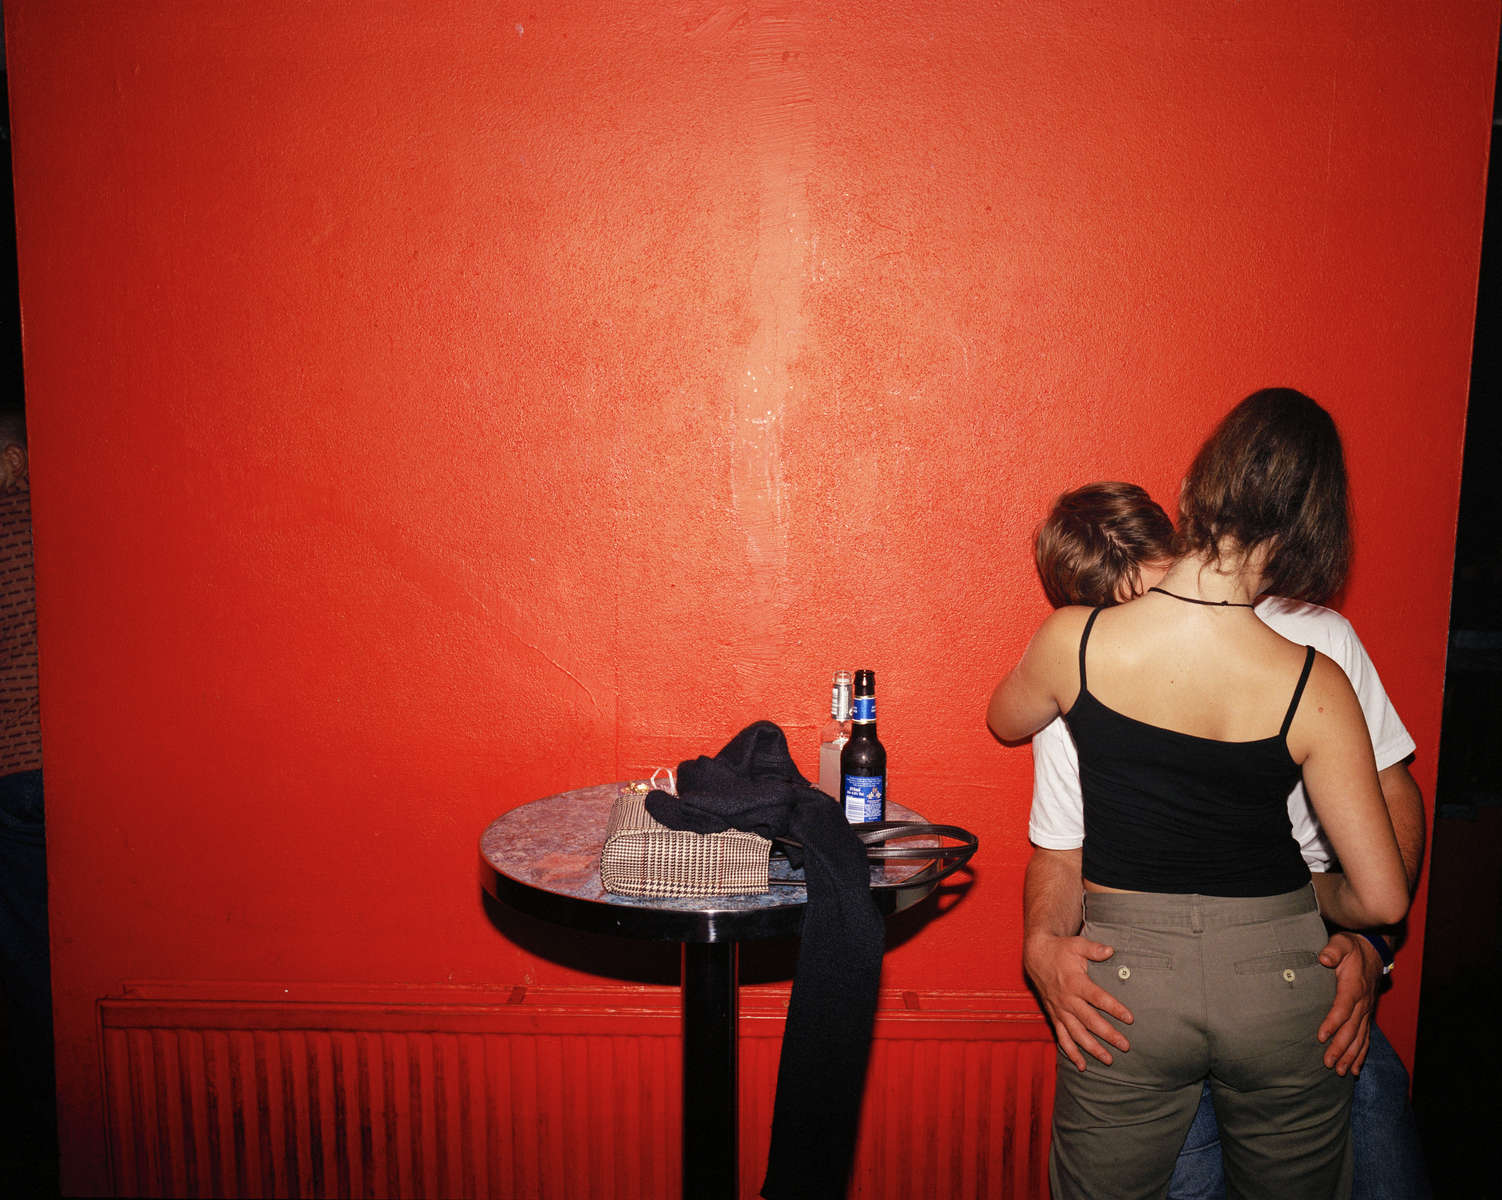 A young couple kiss passionately by a red wall in a Newquay nightclub. July 2001